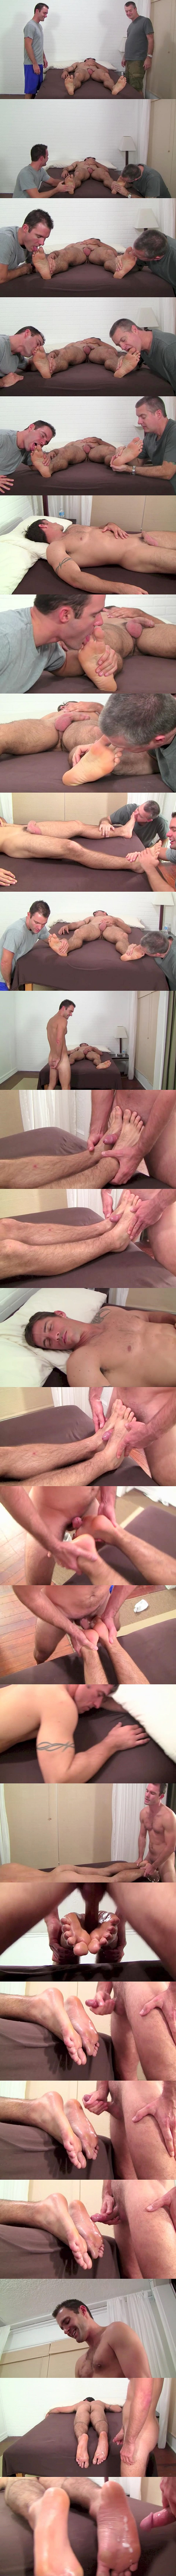 Handsome straight dude Clark (aka Tom Maxwell) gets his size 11 bare feet worshiped while he's sleeping before Cameron Kincade fucks Clark's feet and cums on them at Myfriendsfeet 01